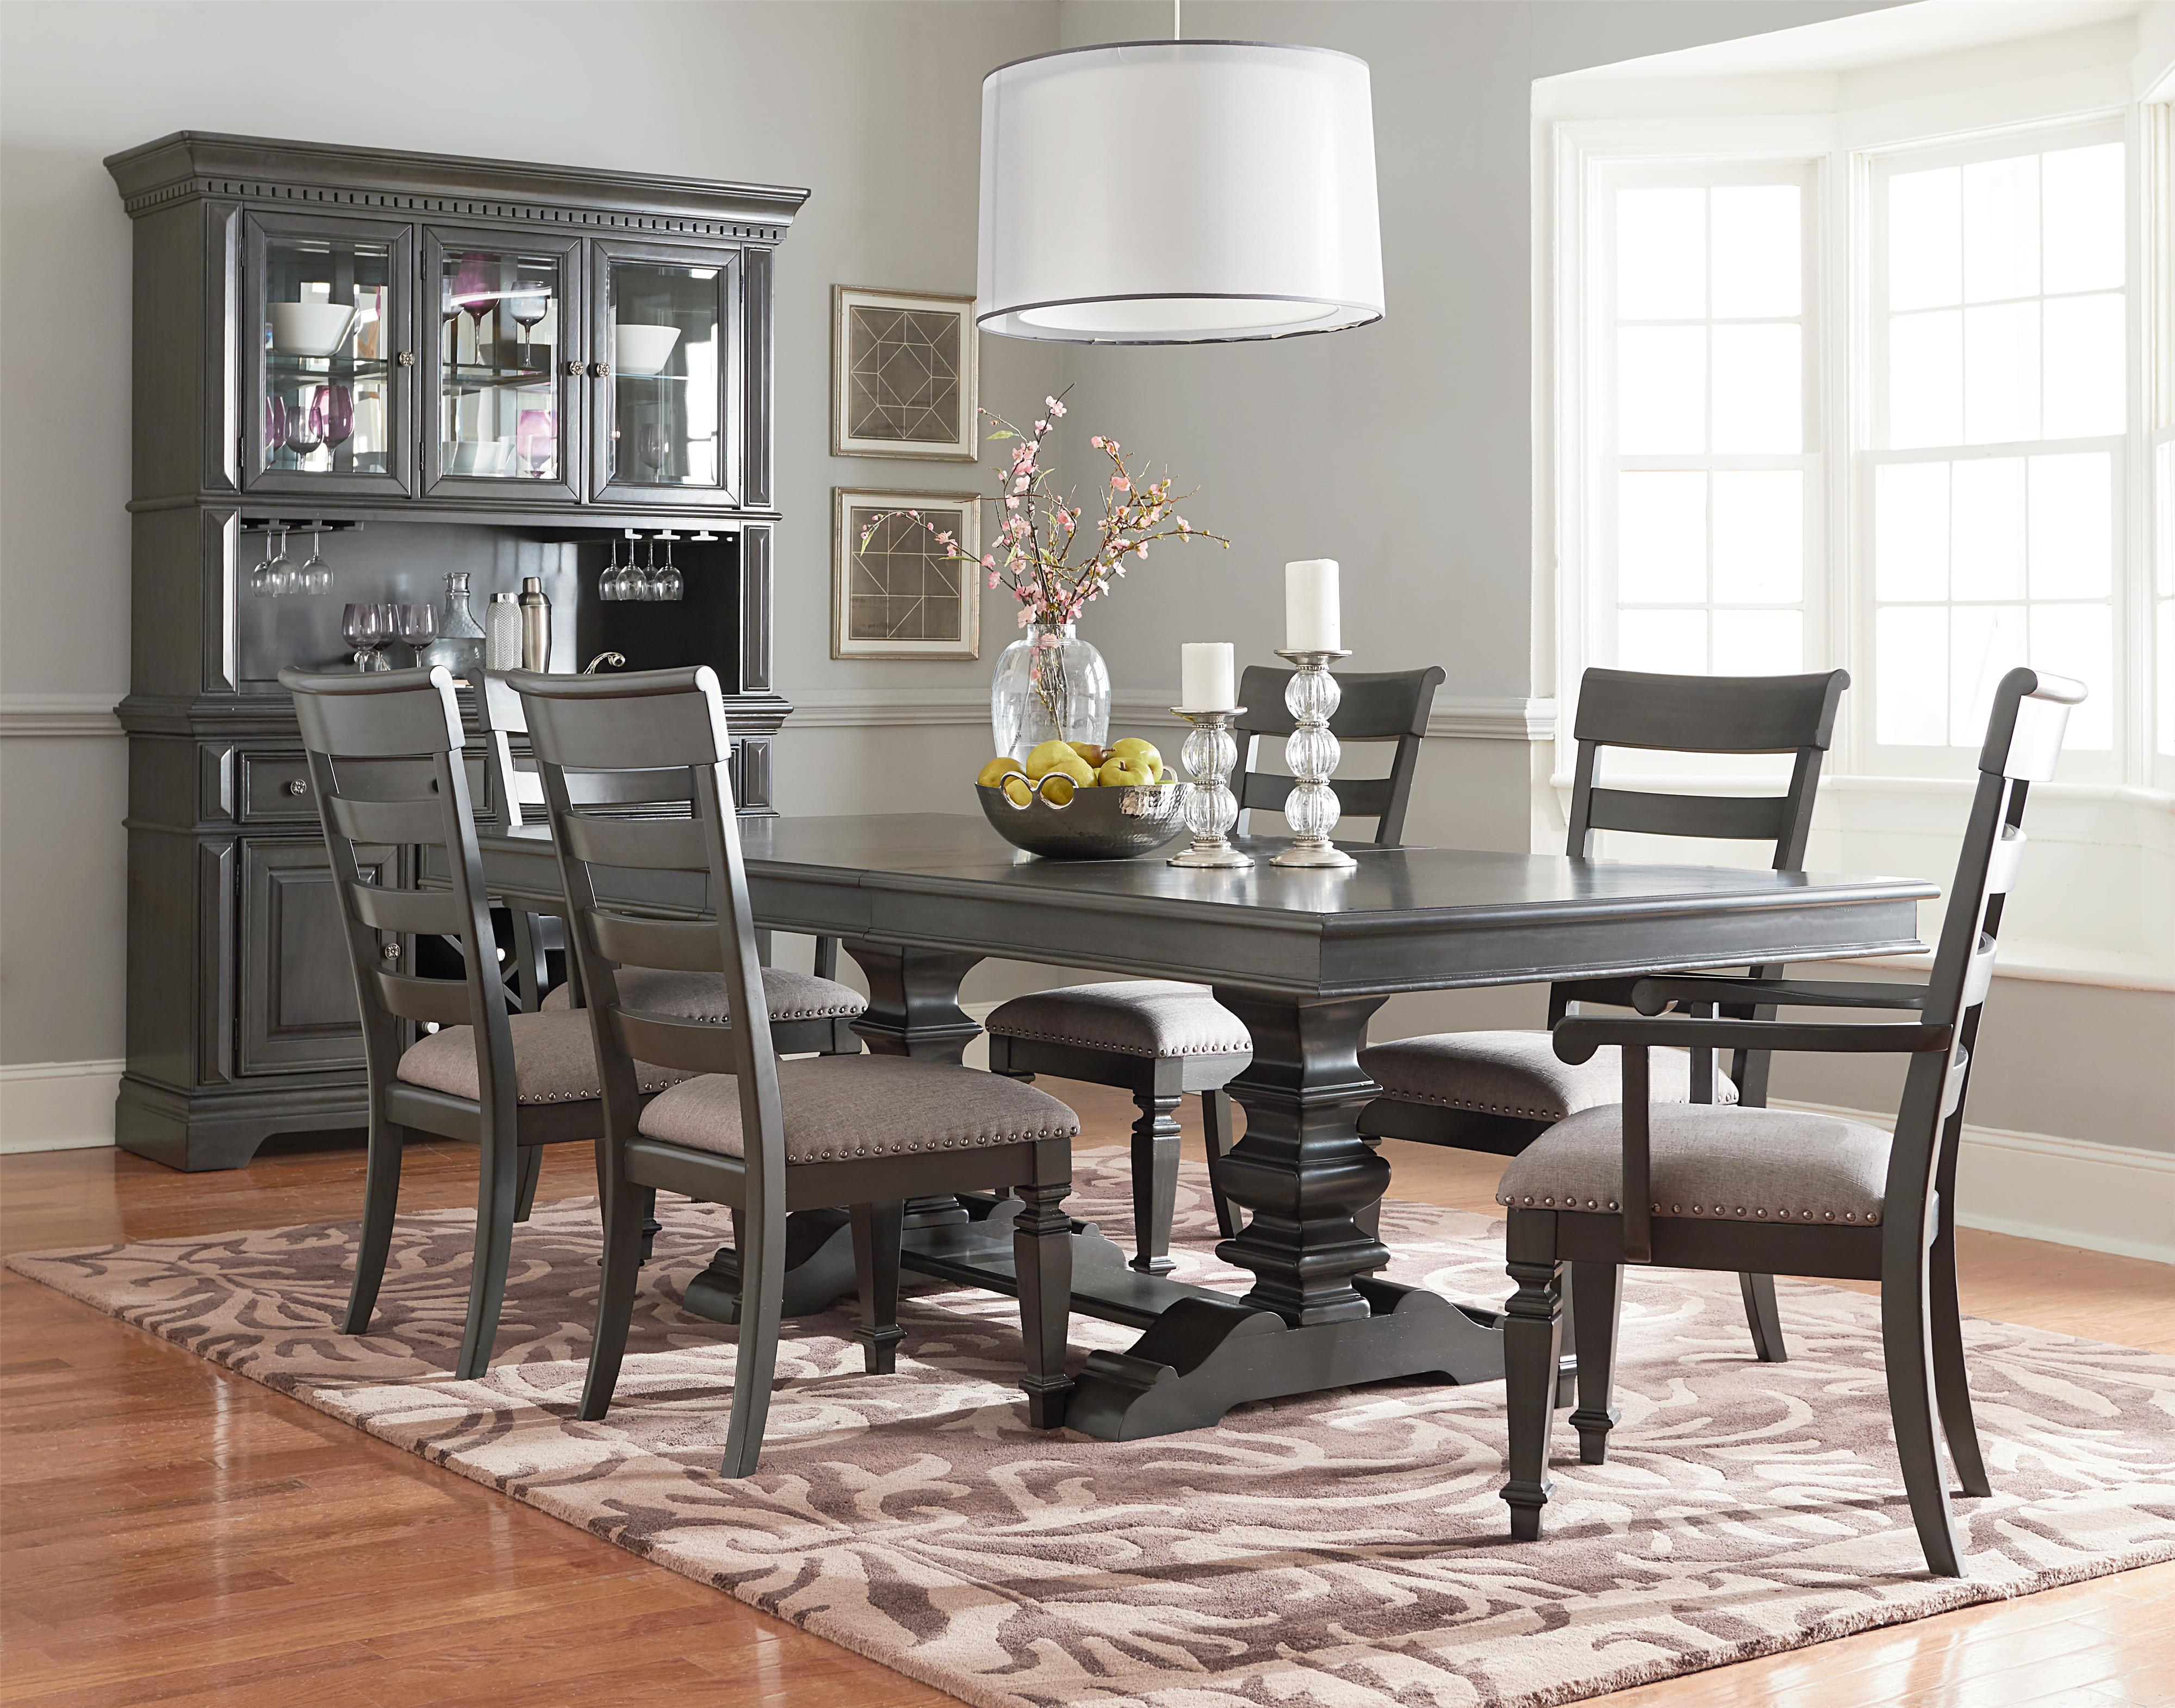 Standard Furniture Garrison Dining Room Group with Trestle